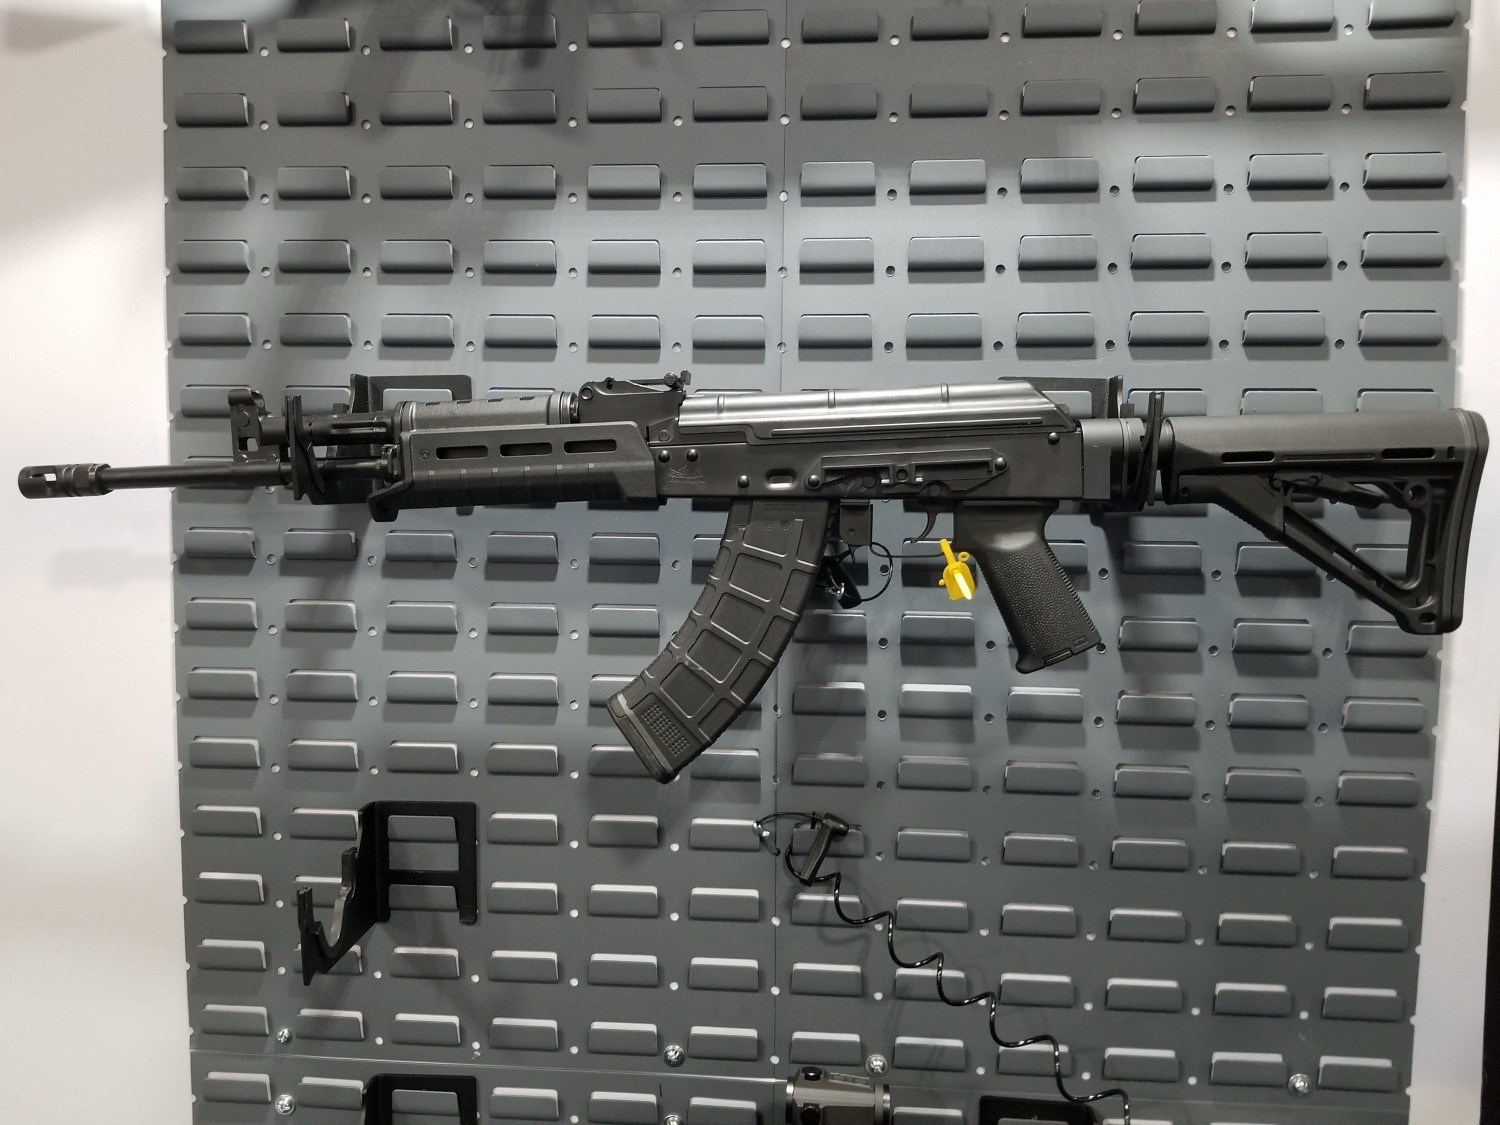 AK-E prototype chambered in 7.62x39